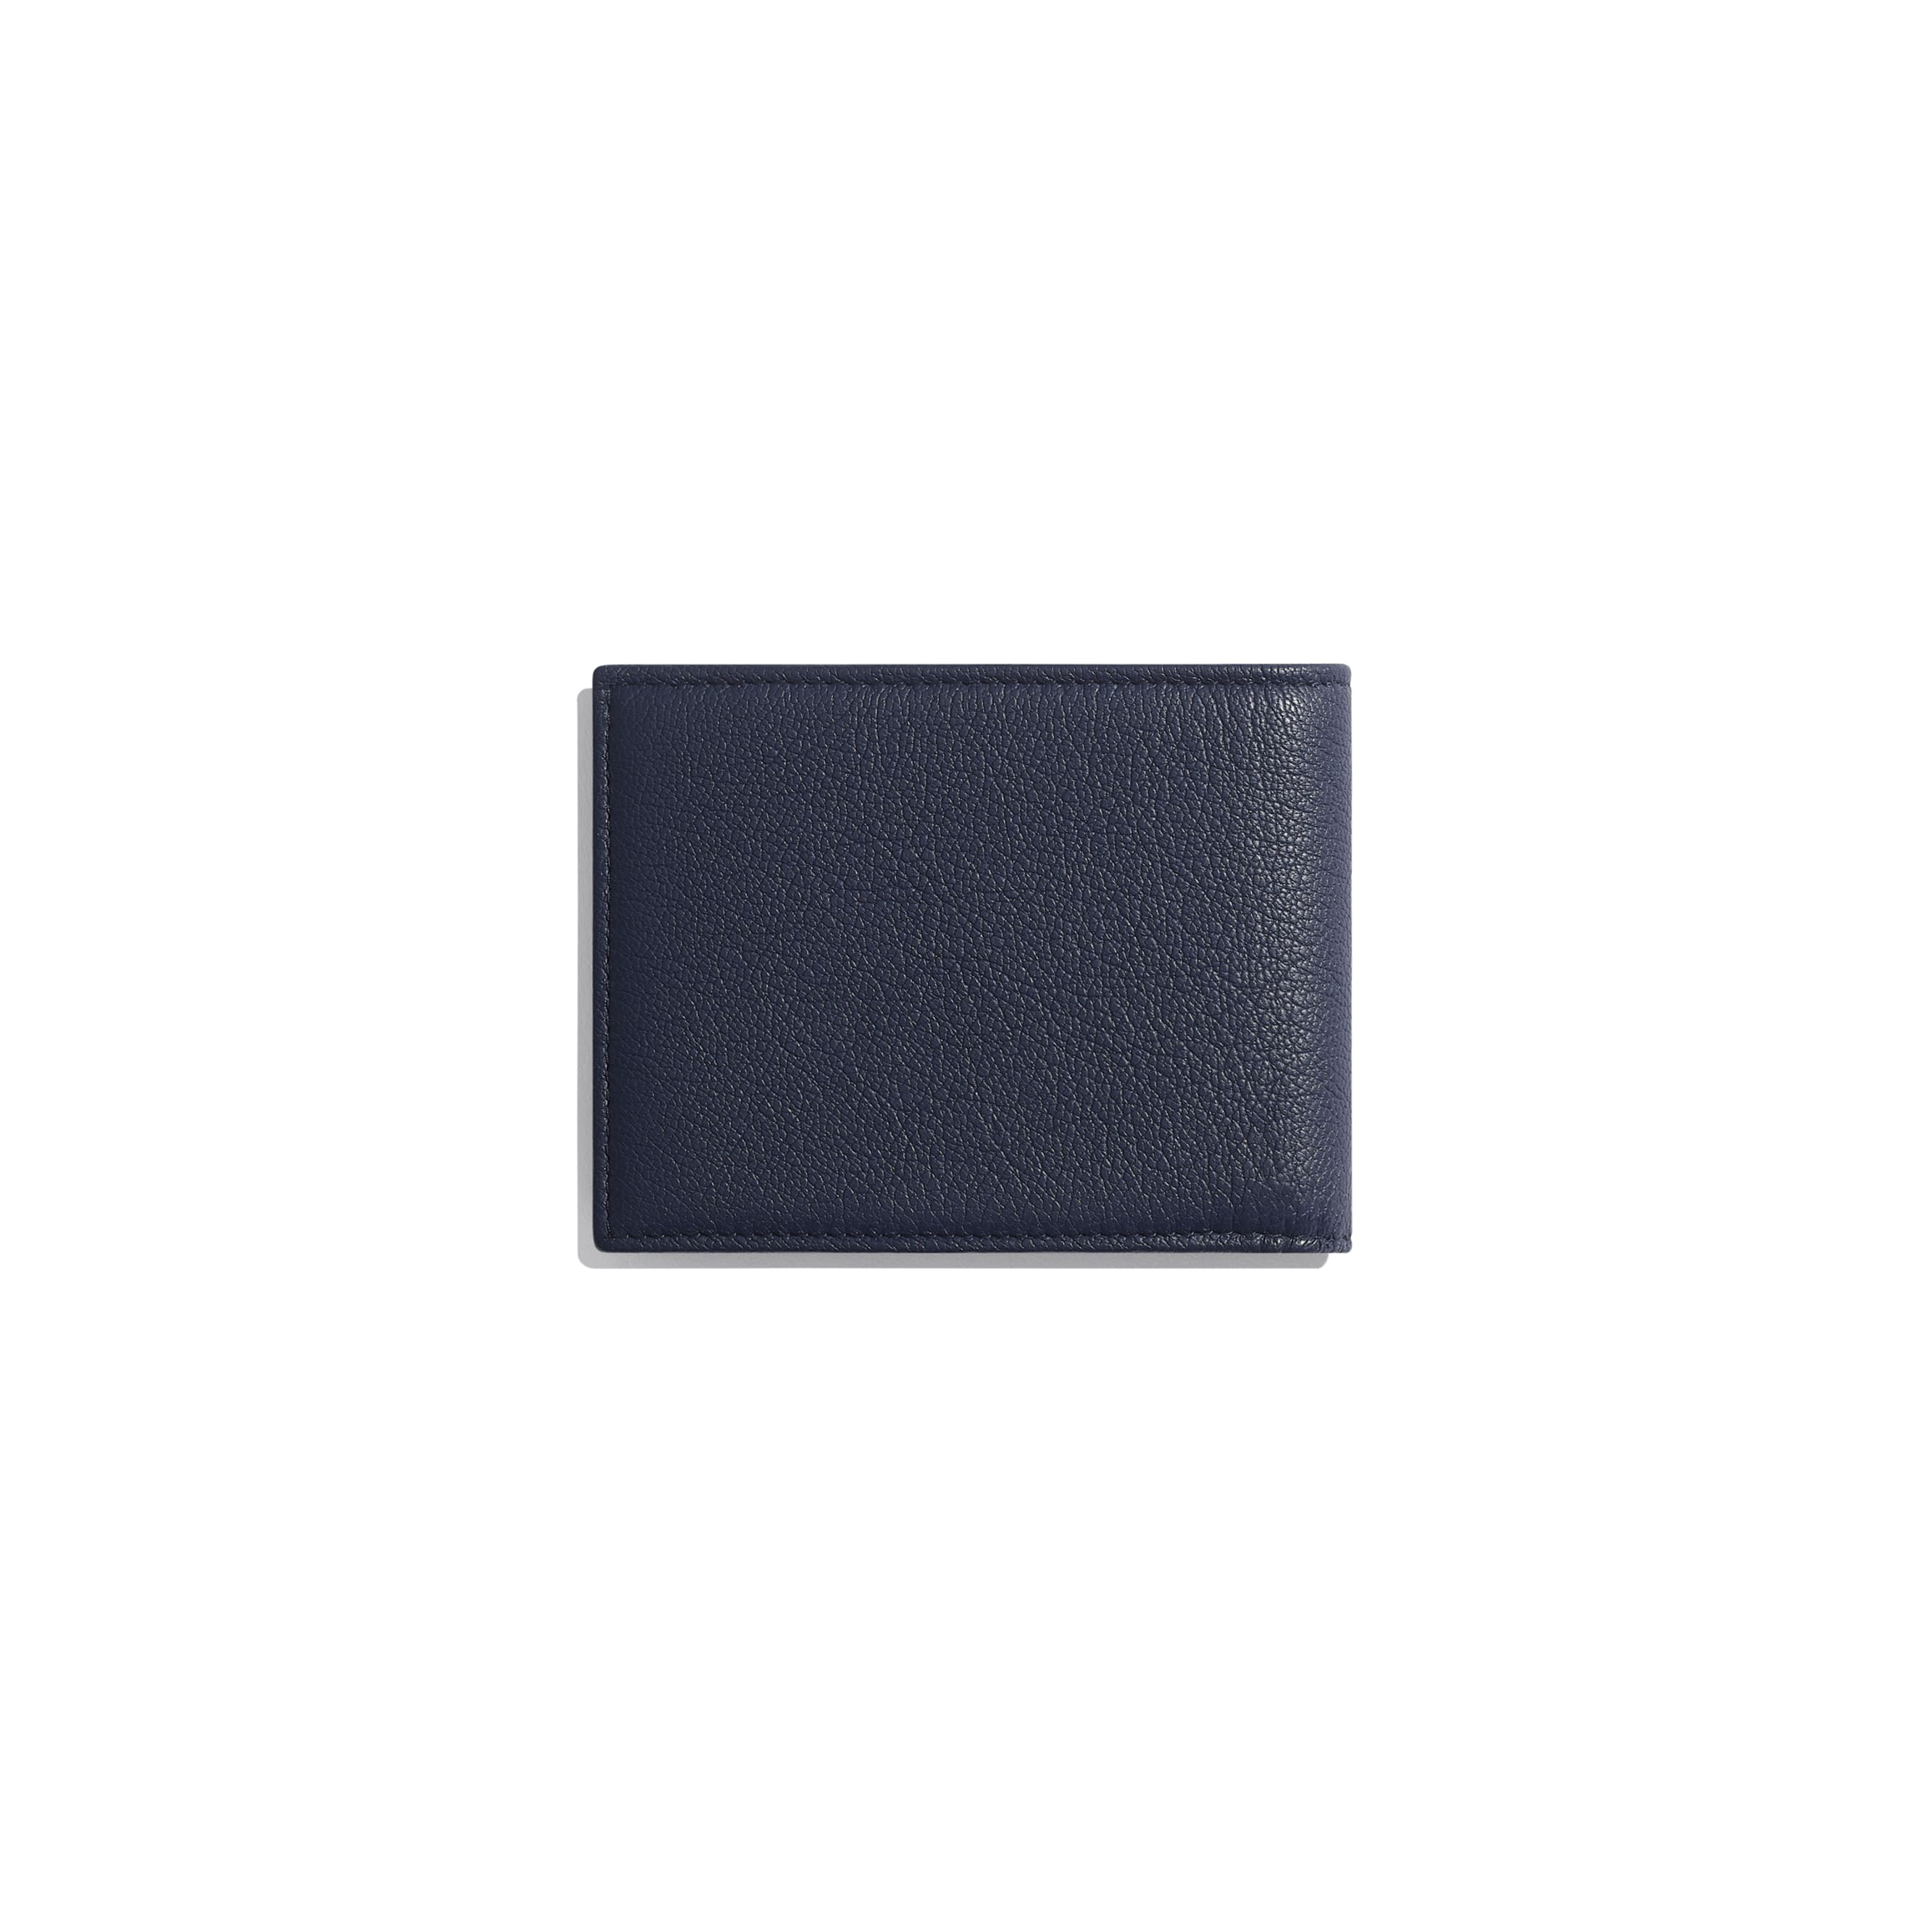 Small Flap Wallet - Navy Blue - Goatskin & Lacquered Silver-Tone Metal - Alternative view - see standard sized version